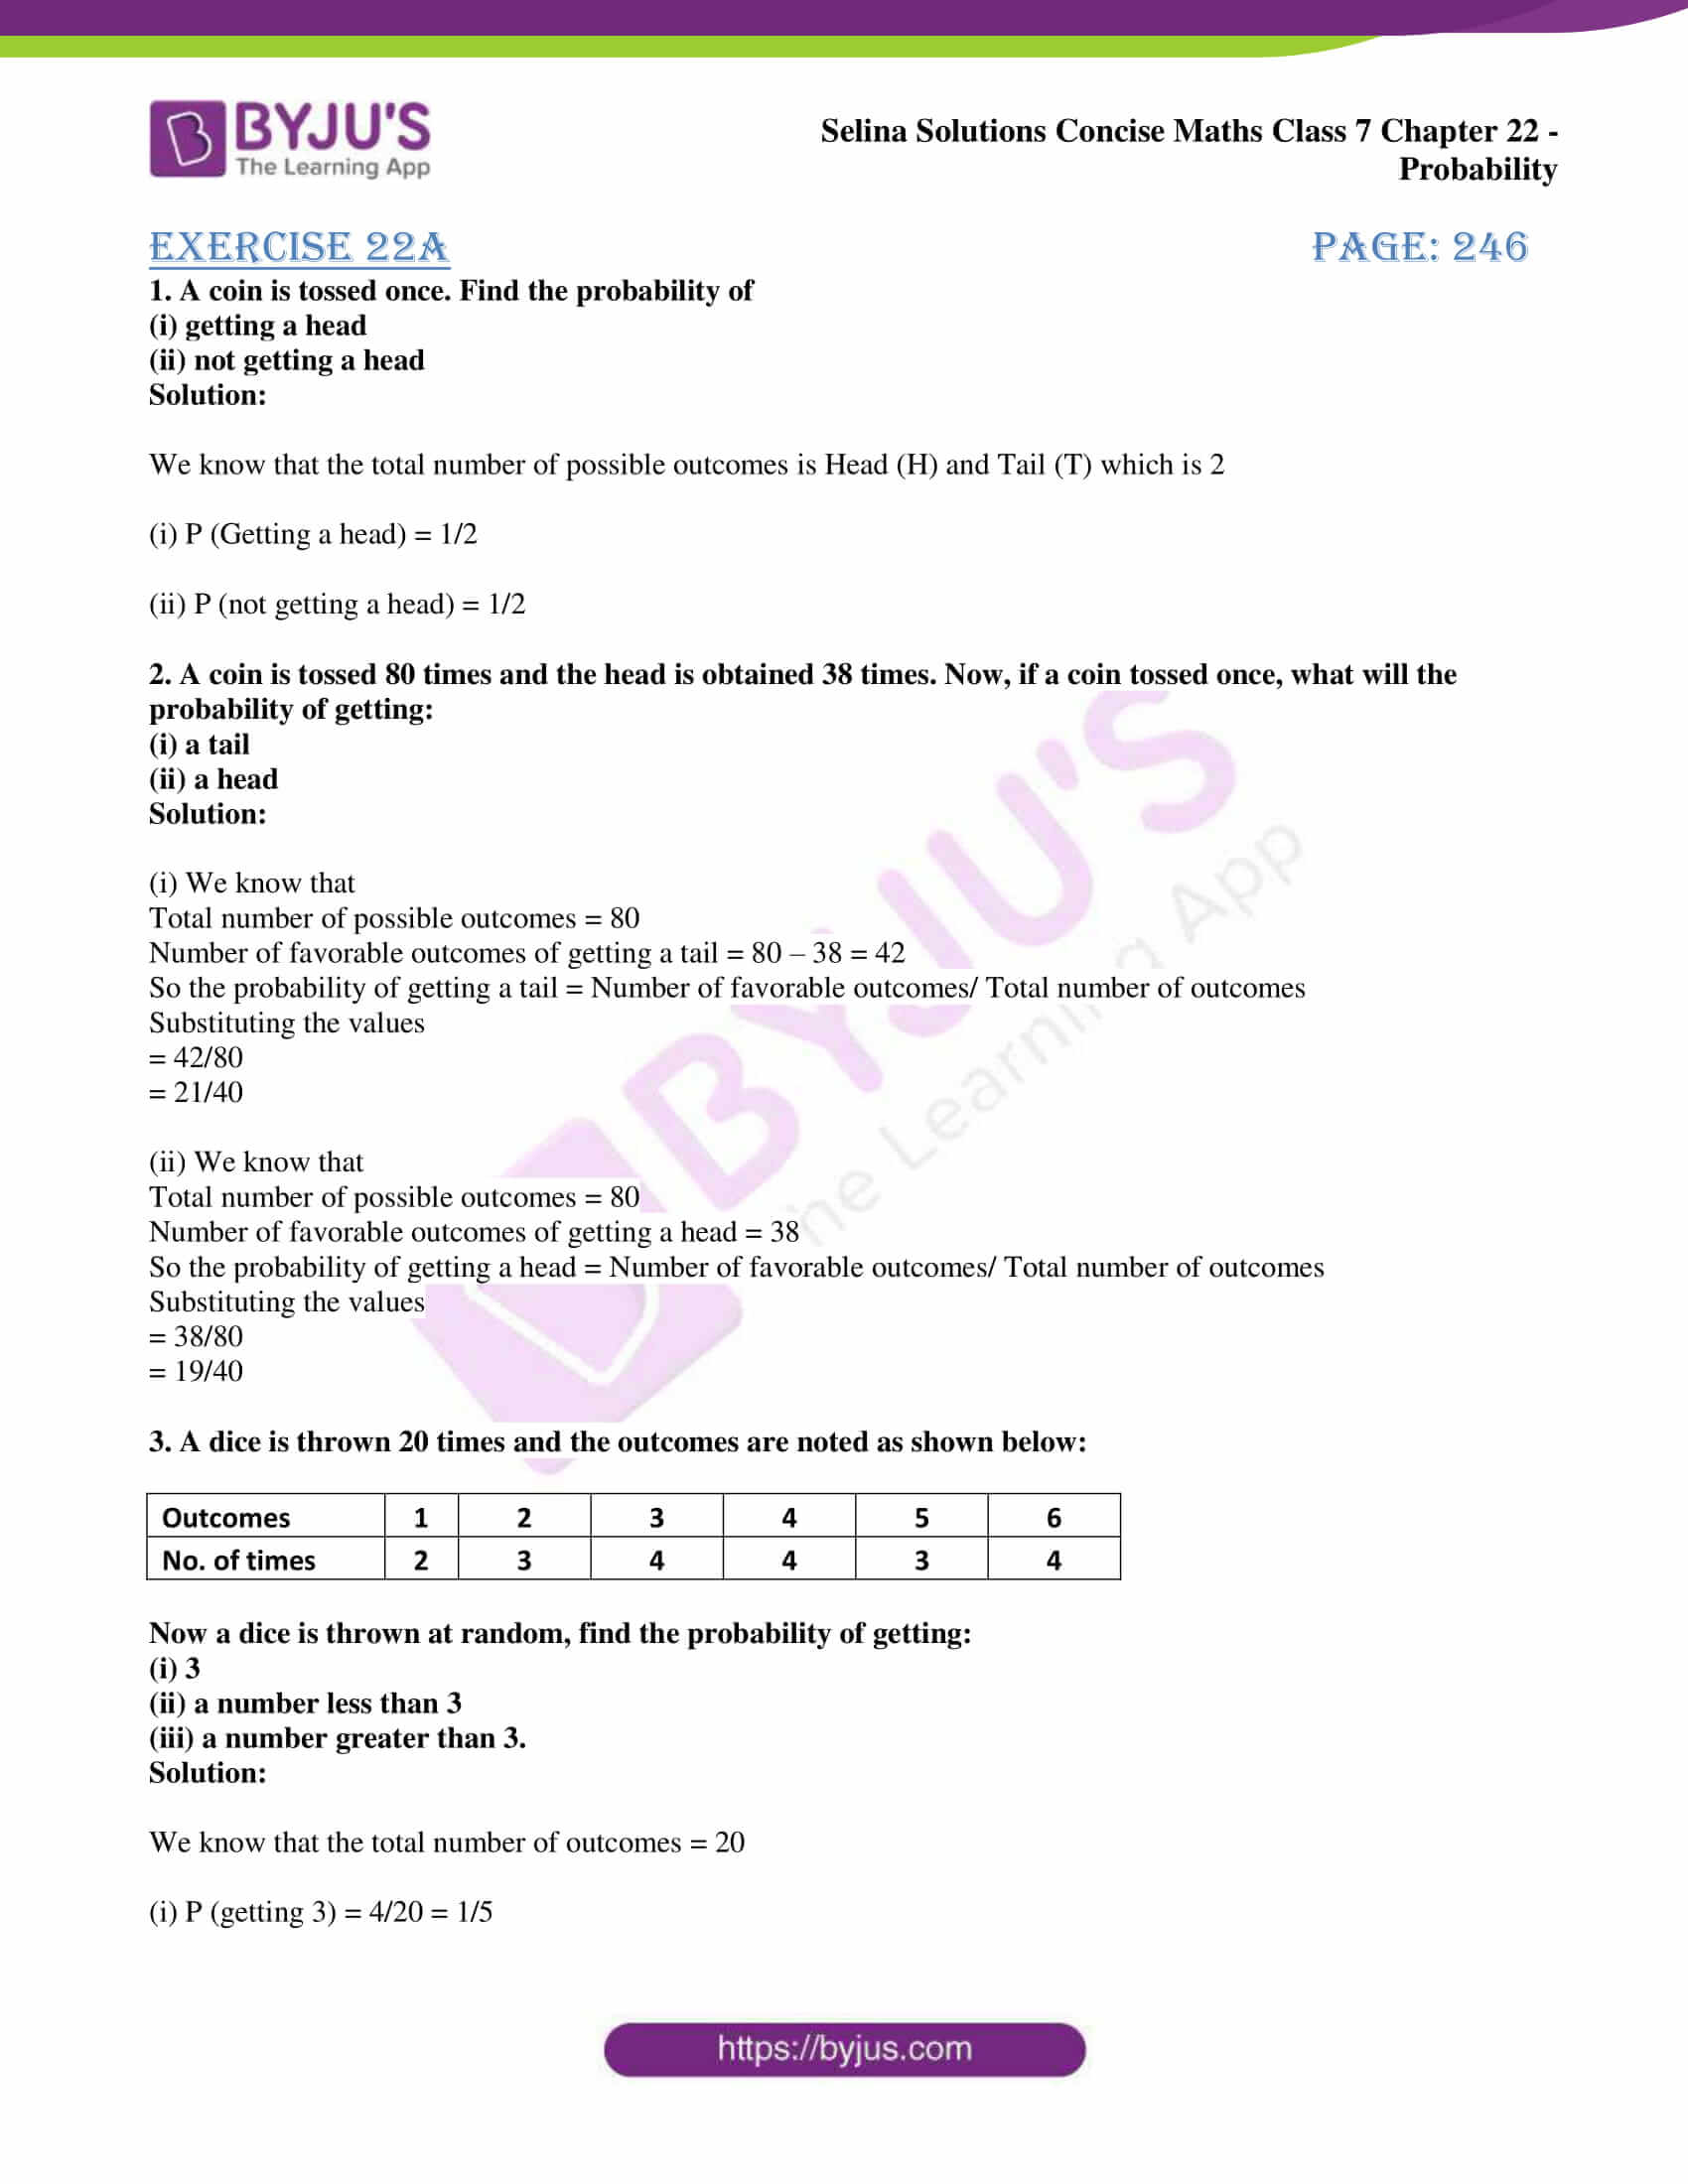 selina sol concise maths class 7 chapter 22 ex a 1